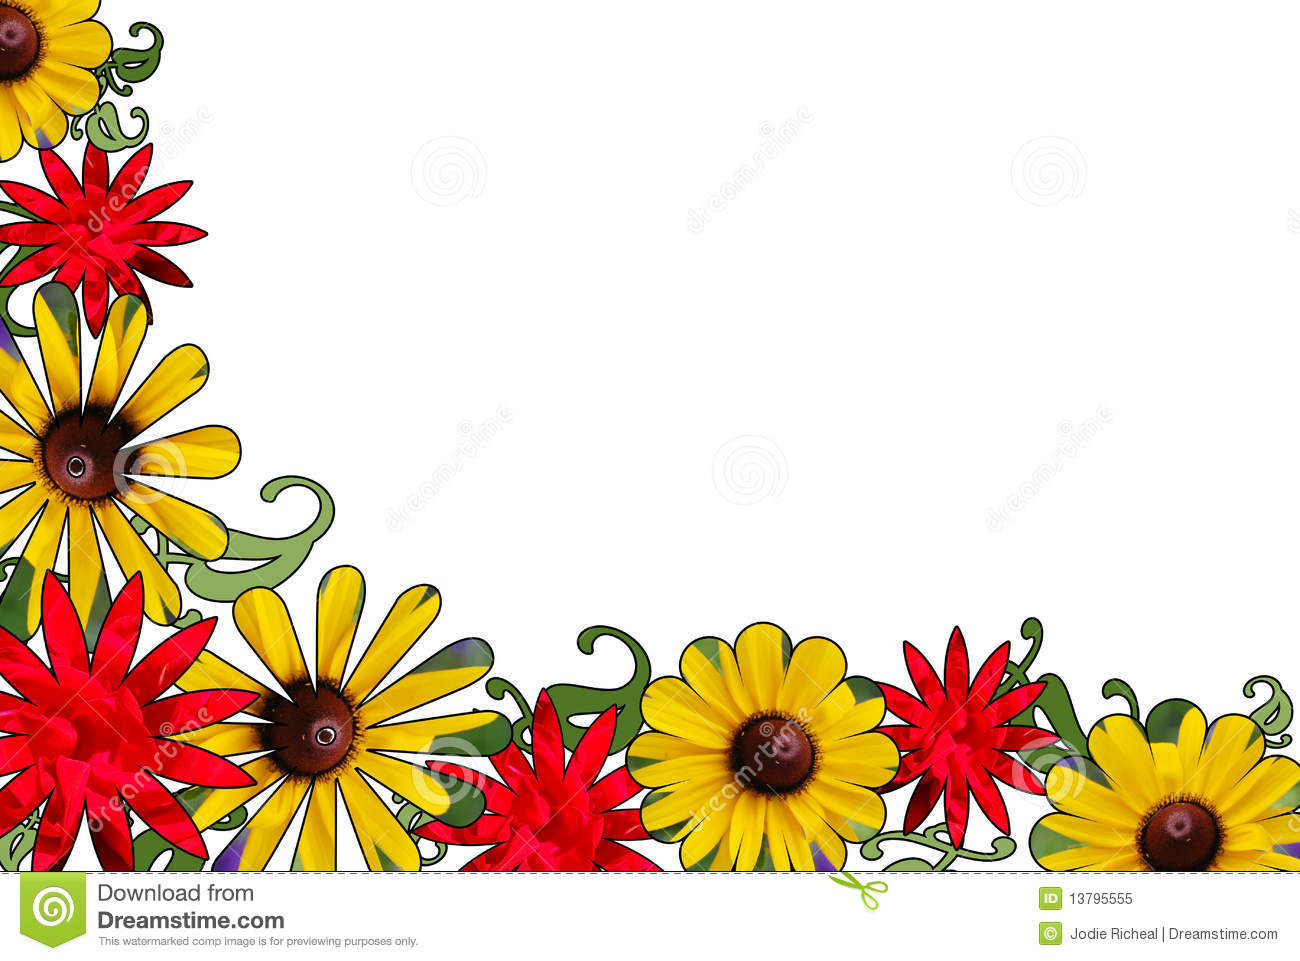 Yellow Flower Logo With Red Border Unlimited Clipart Design